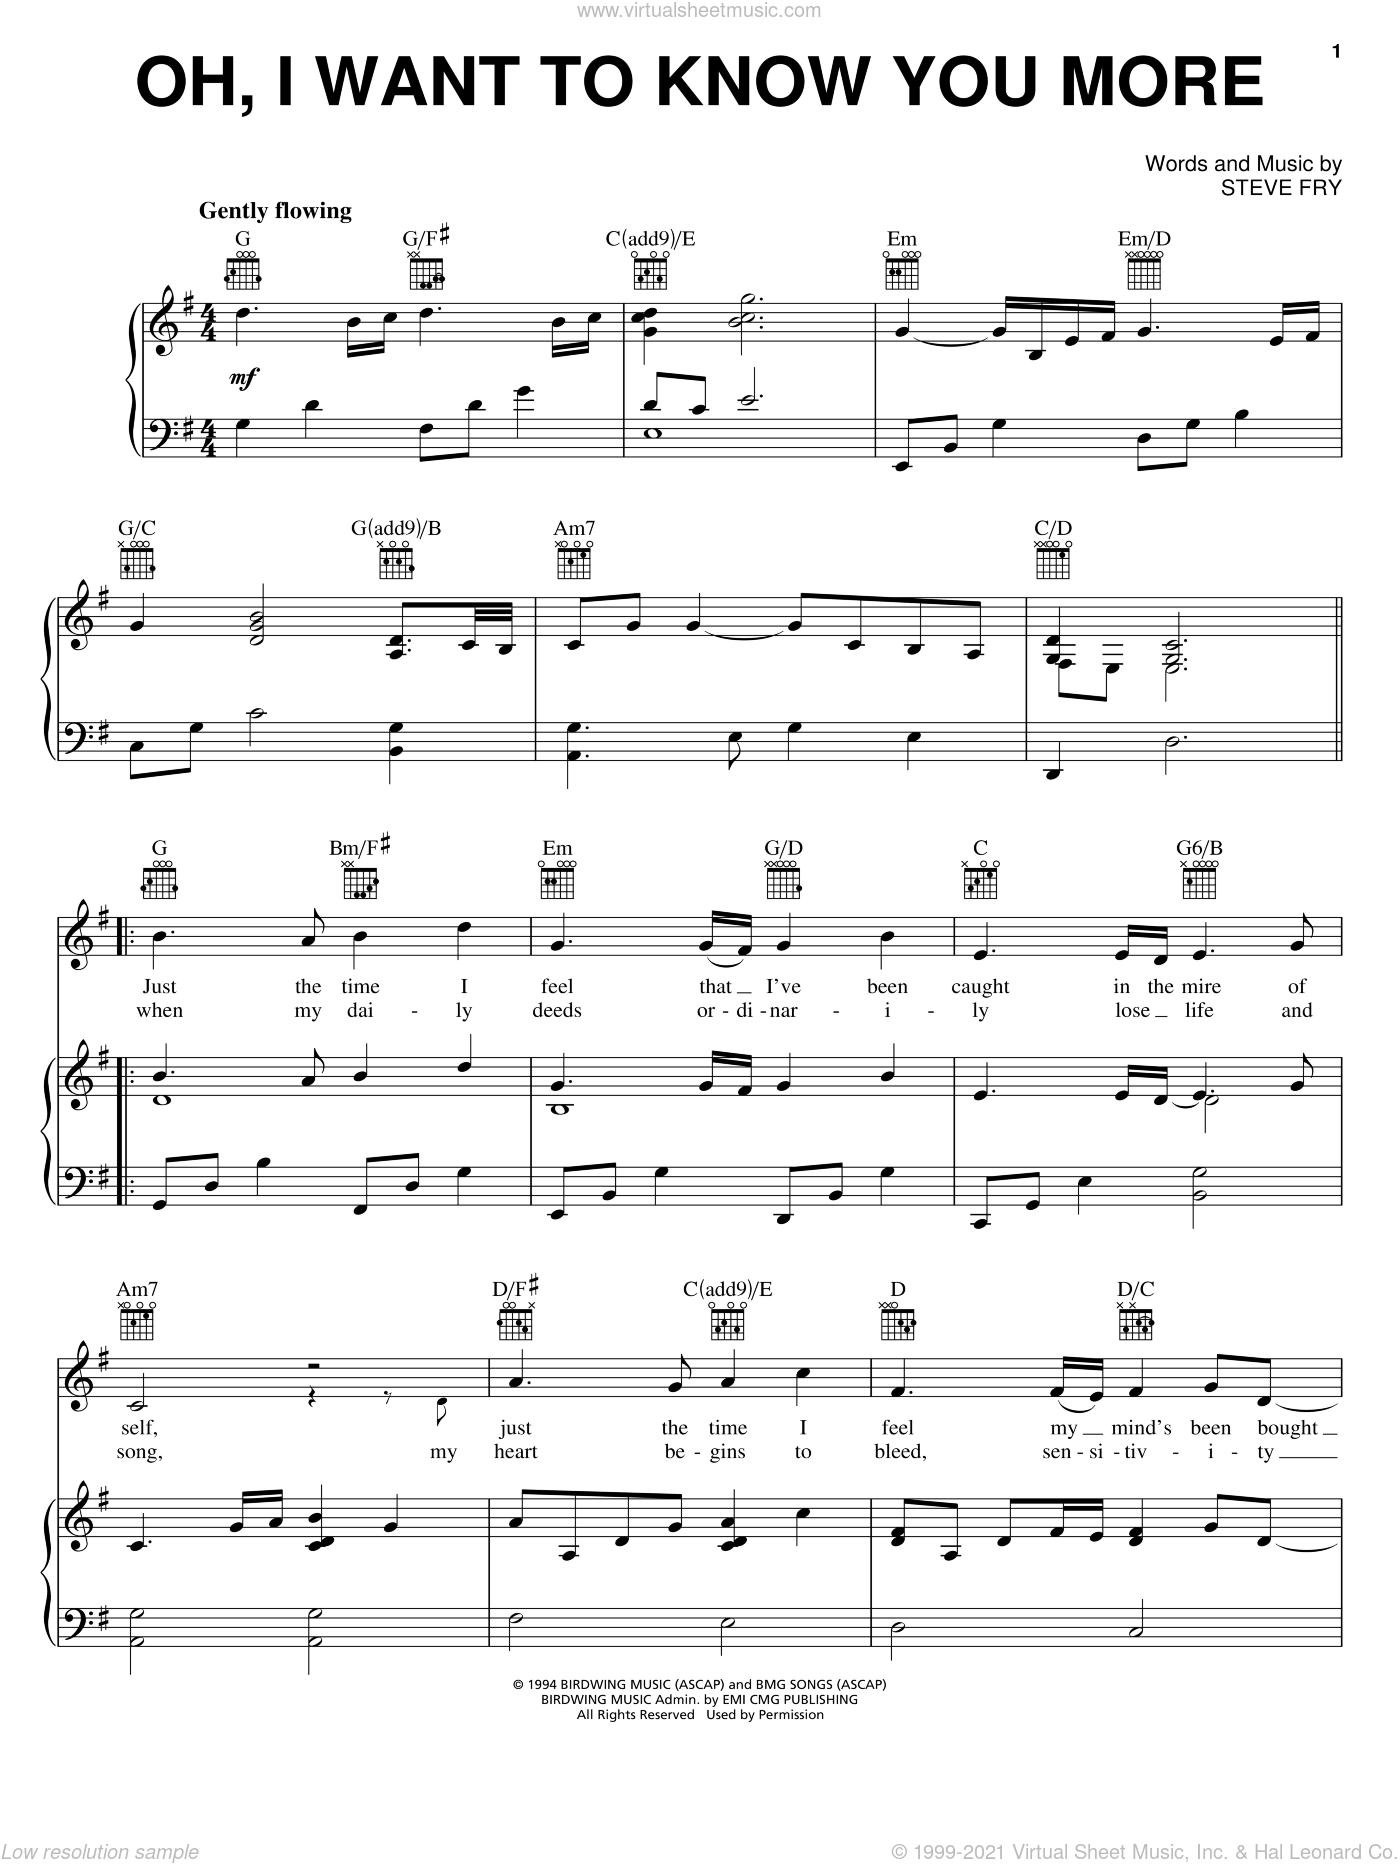 Oh, I Want To Know You More sheet music for voice, piano or guitar by Steve Green and Steve Fry, intermediate skill level